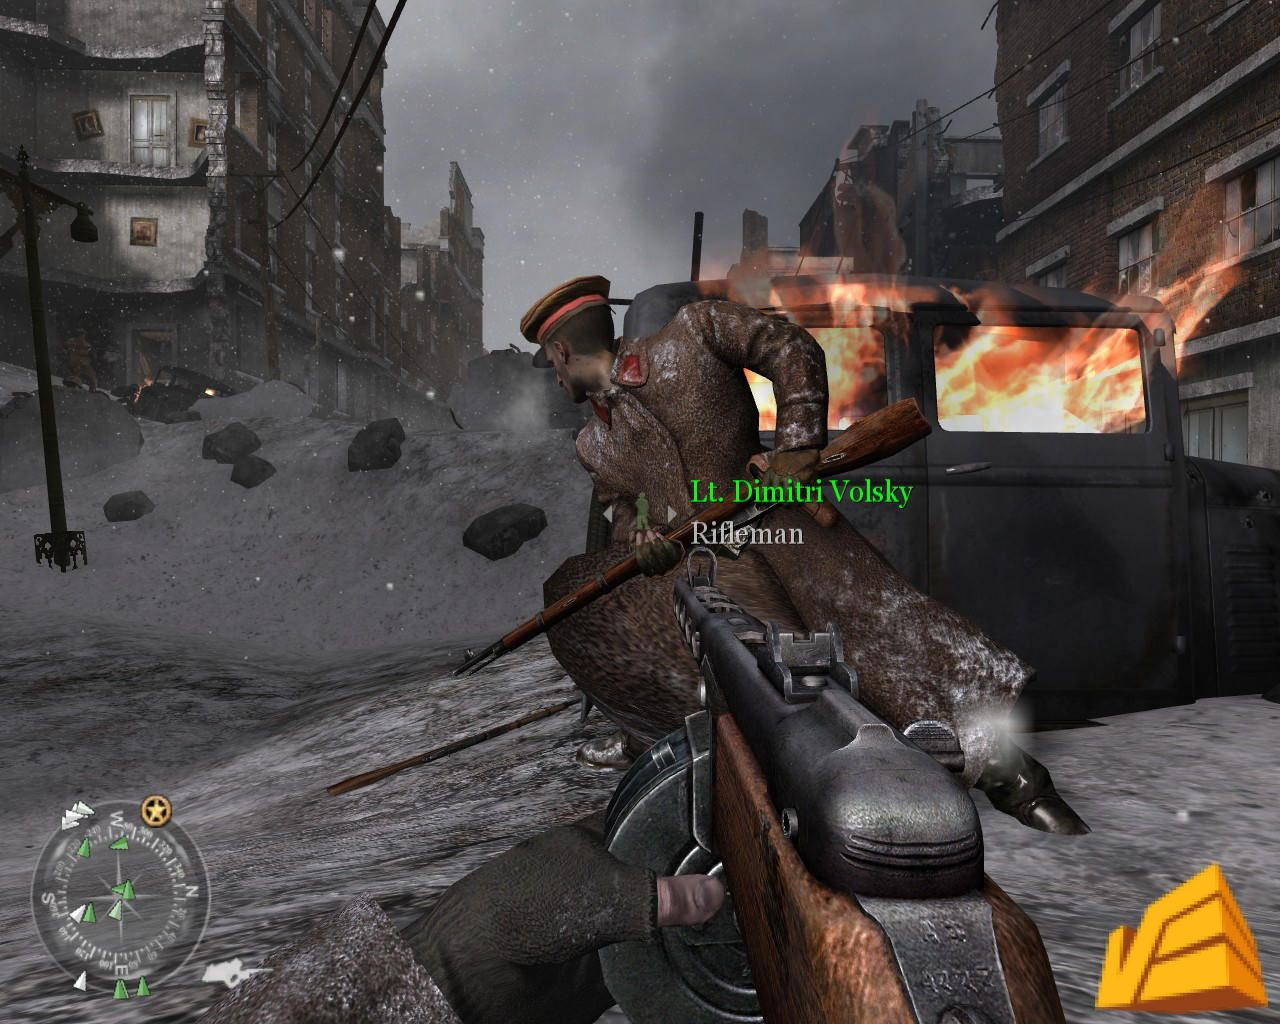 call of duty 2 download game pc game free download call of duty 2